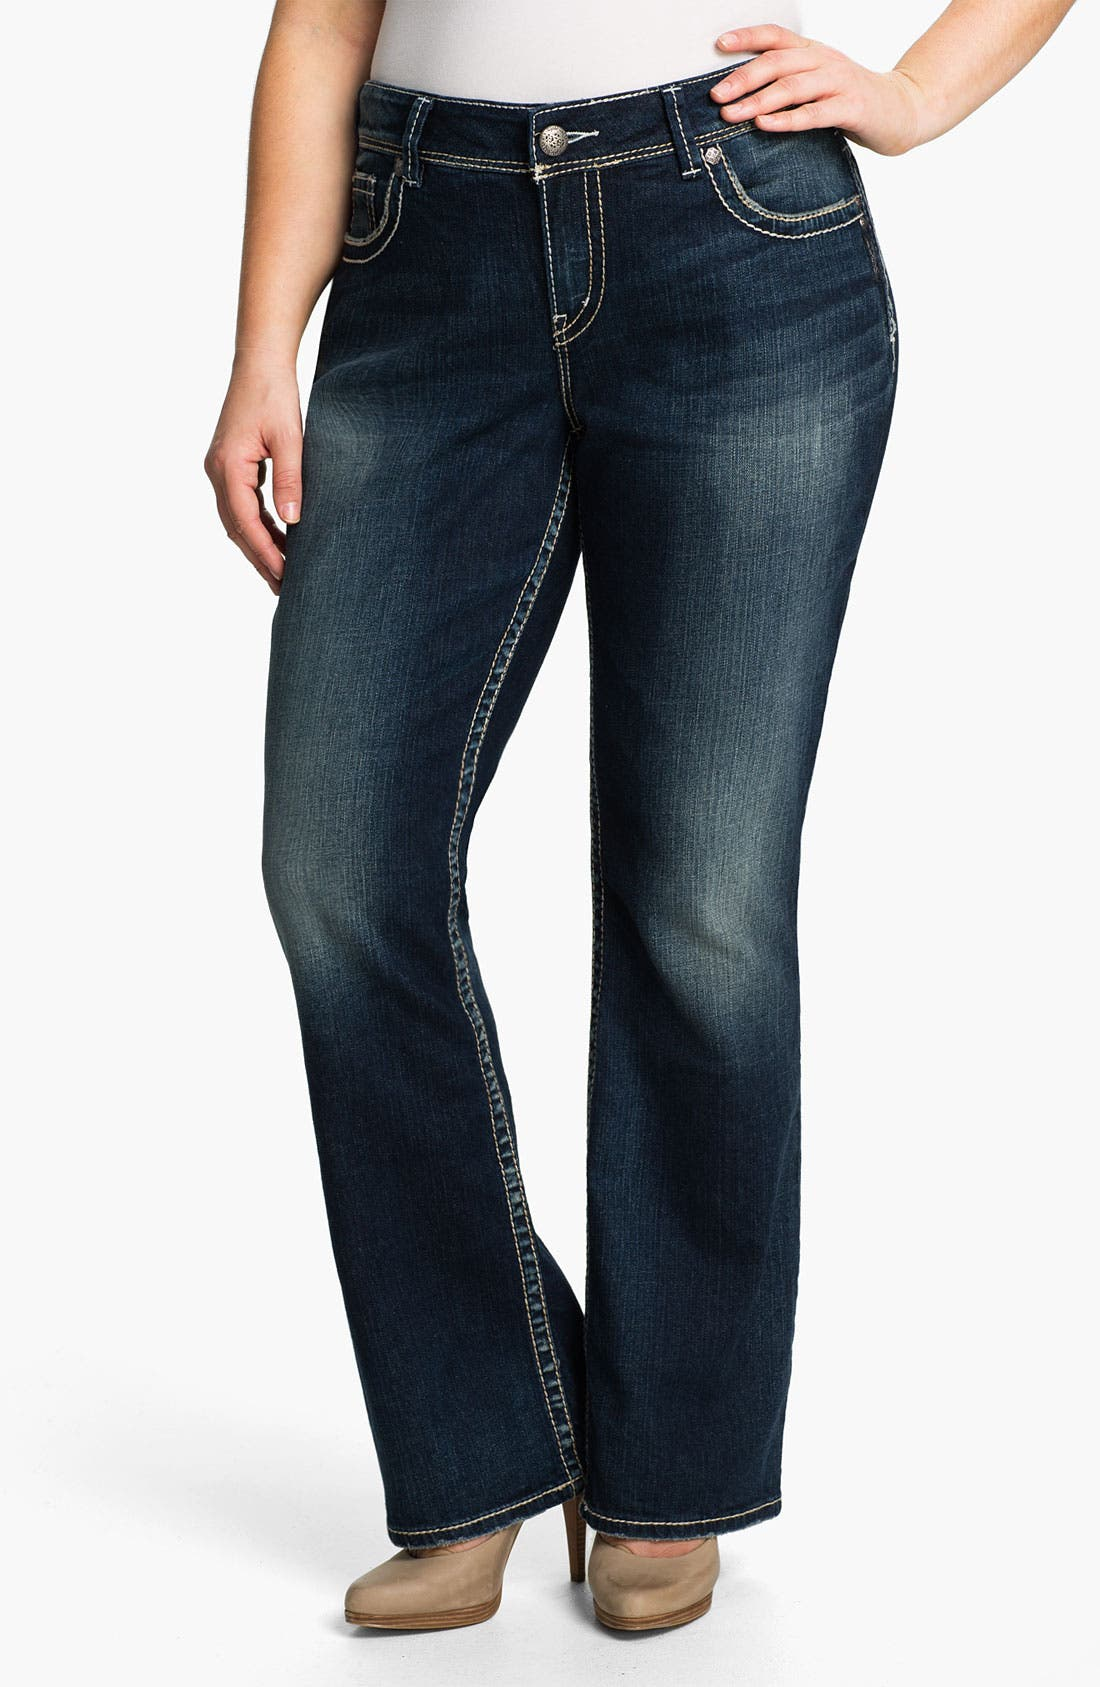 Alternate Image 1 Selected - Silver Jeans Co. 'Suki' Bootcut Jeans (Plus)